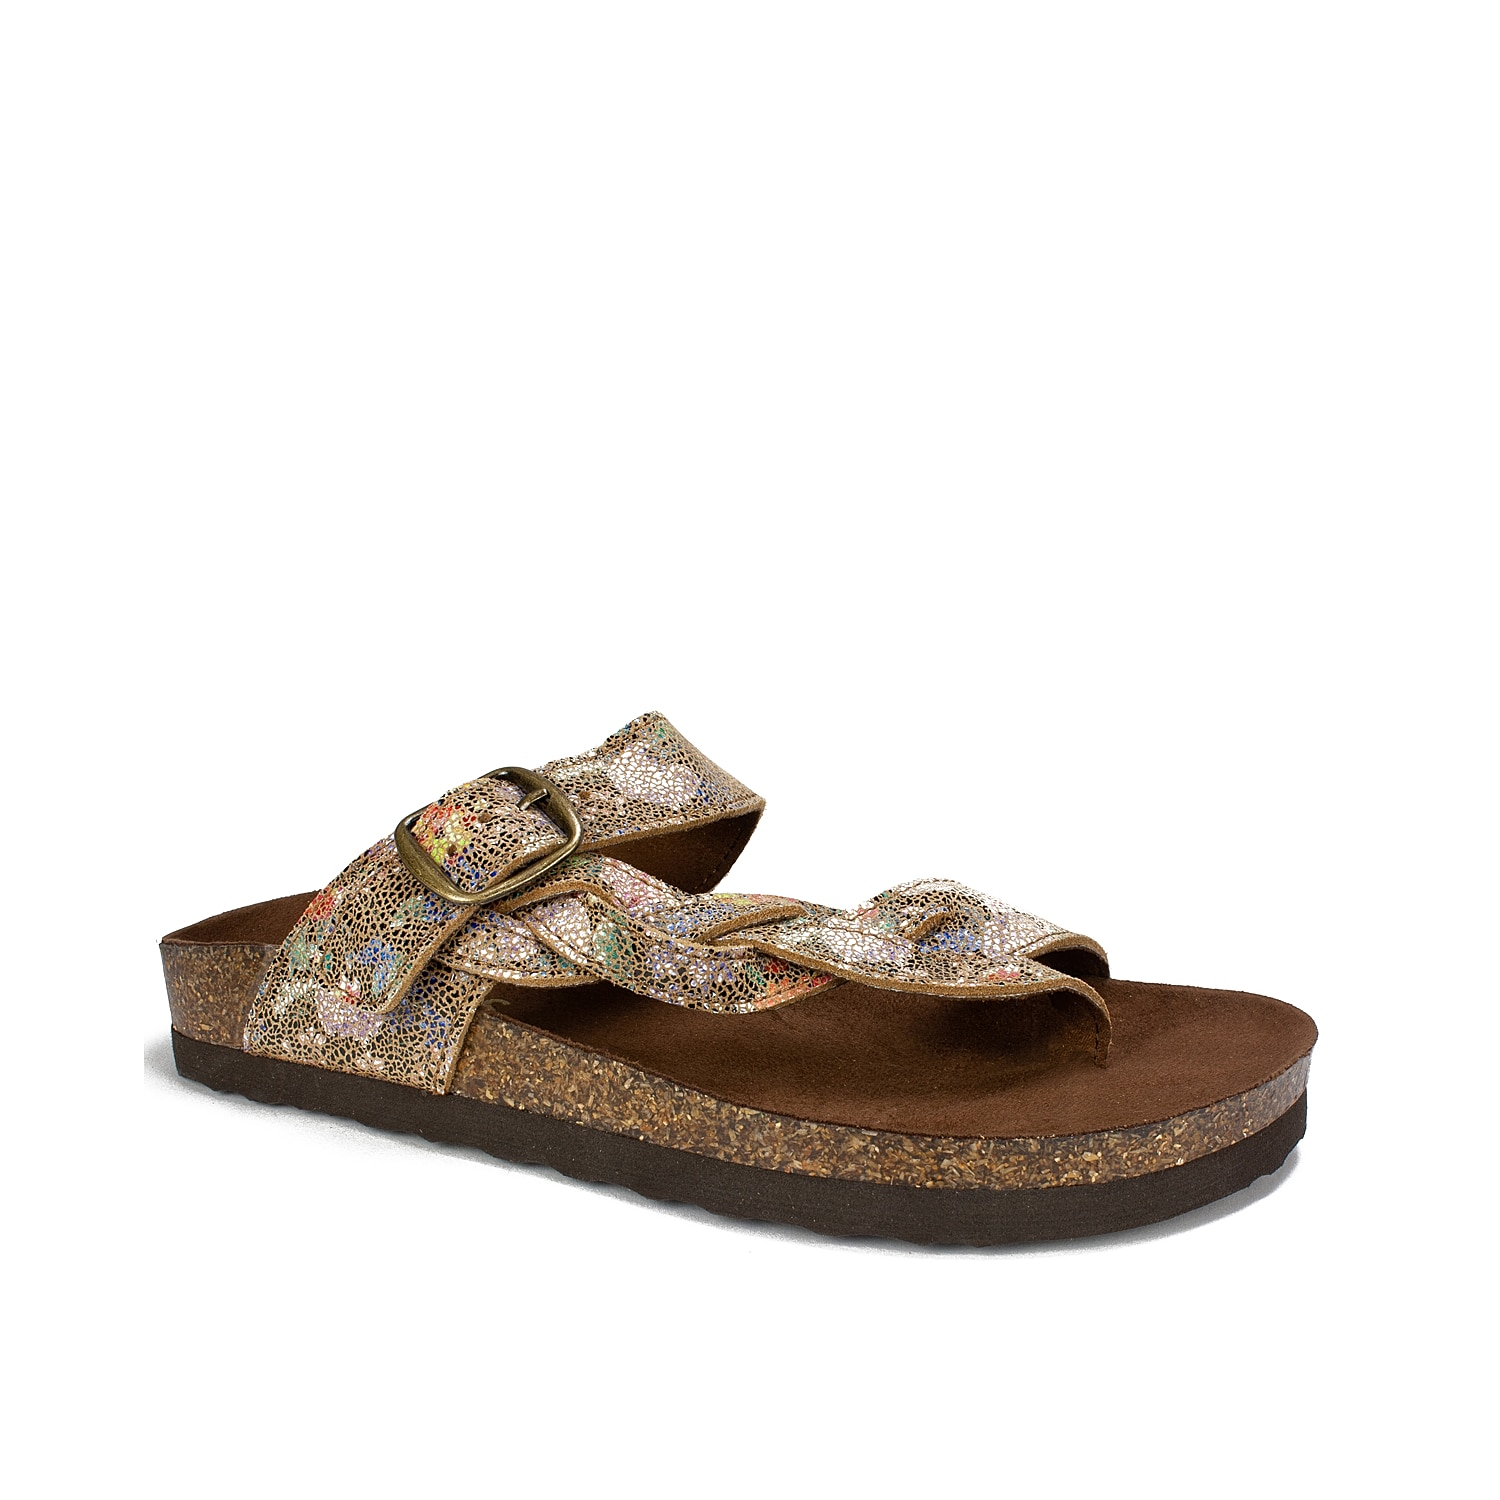 Slide into these comfy leather footbed sandals to complete your warm weather look. Classic and versatile, the White Mountain Crawford thong sandal will become a go-to flat sandal in your casual summer wardrobe.